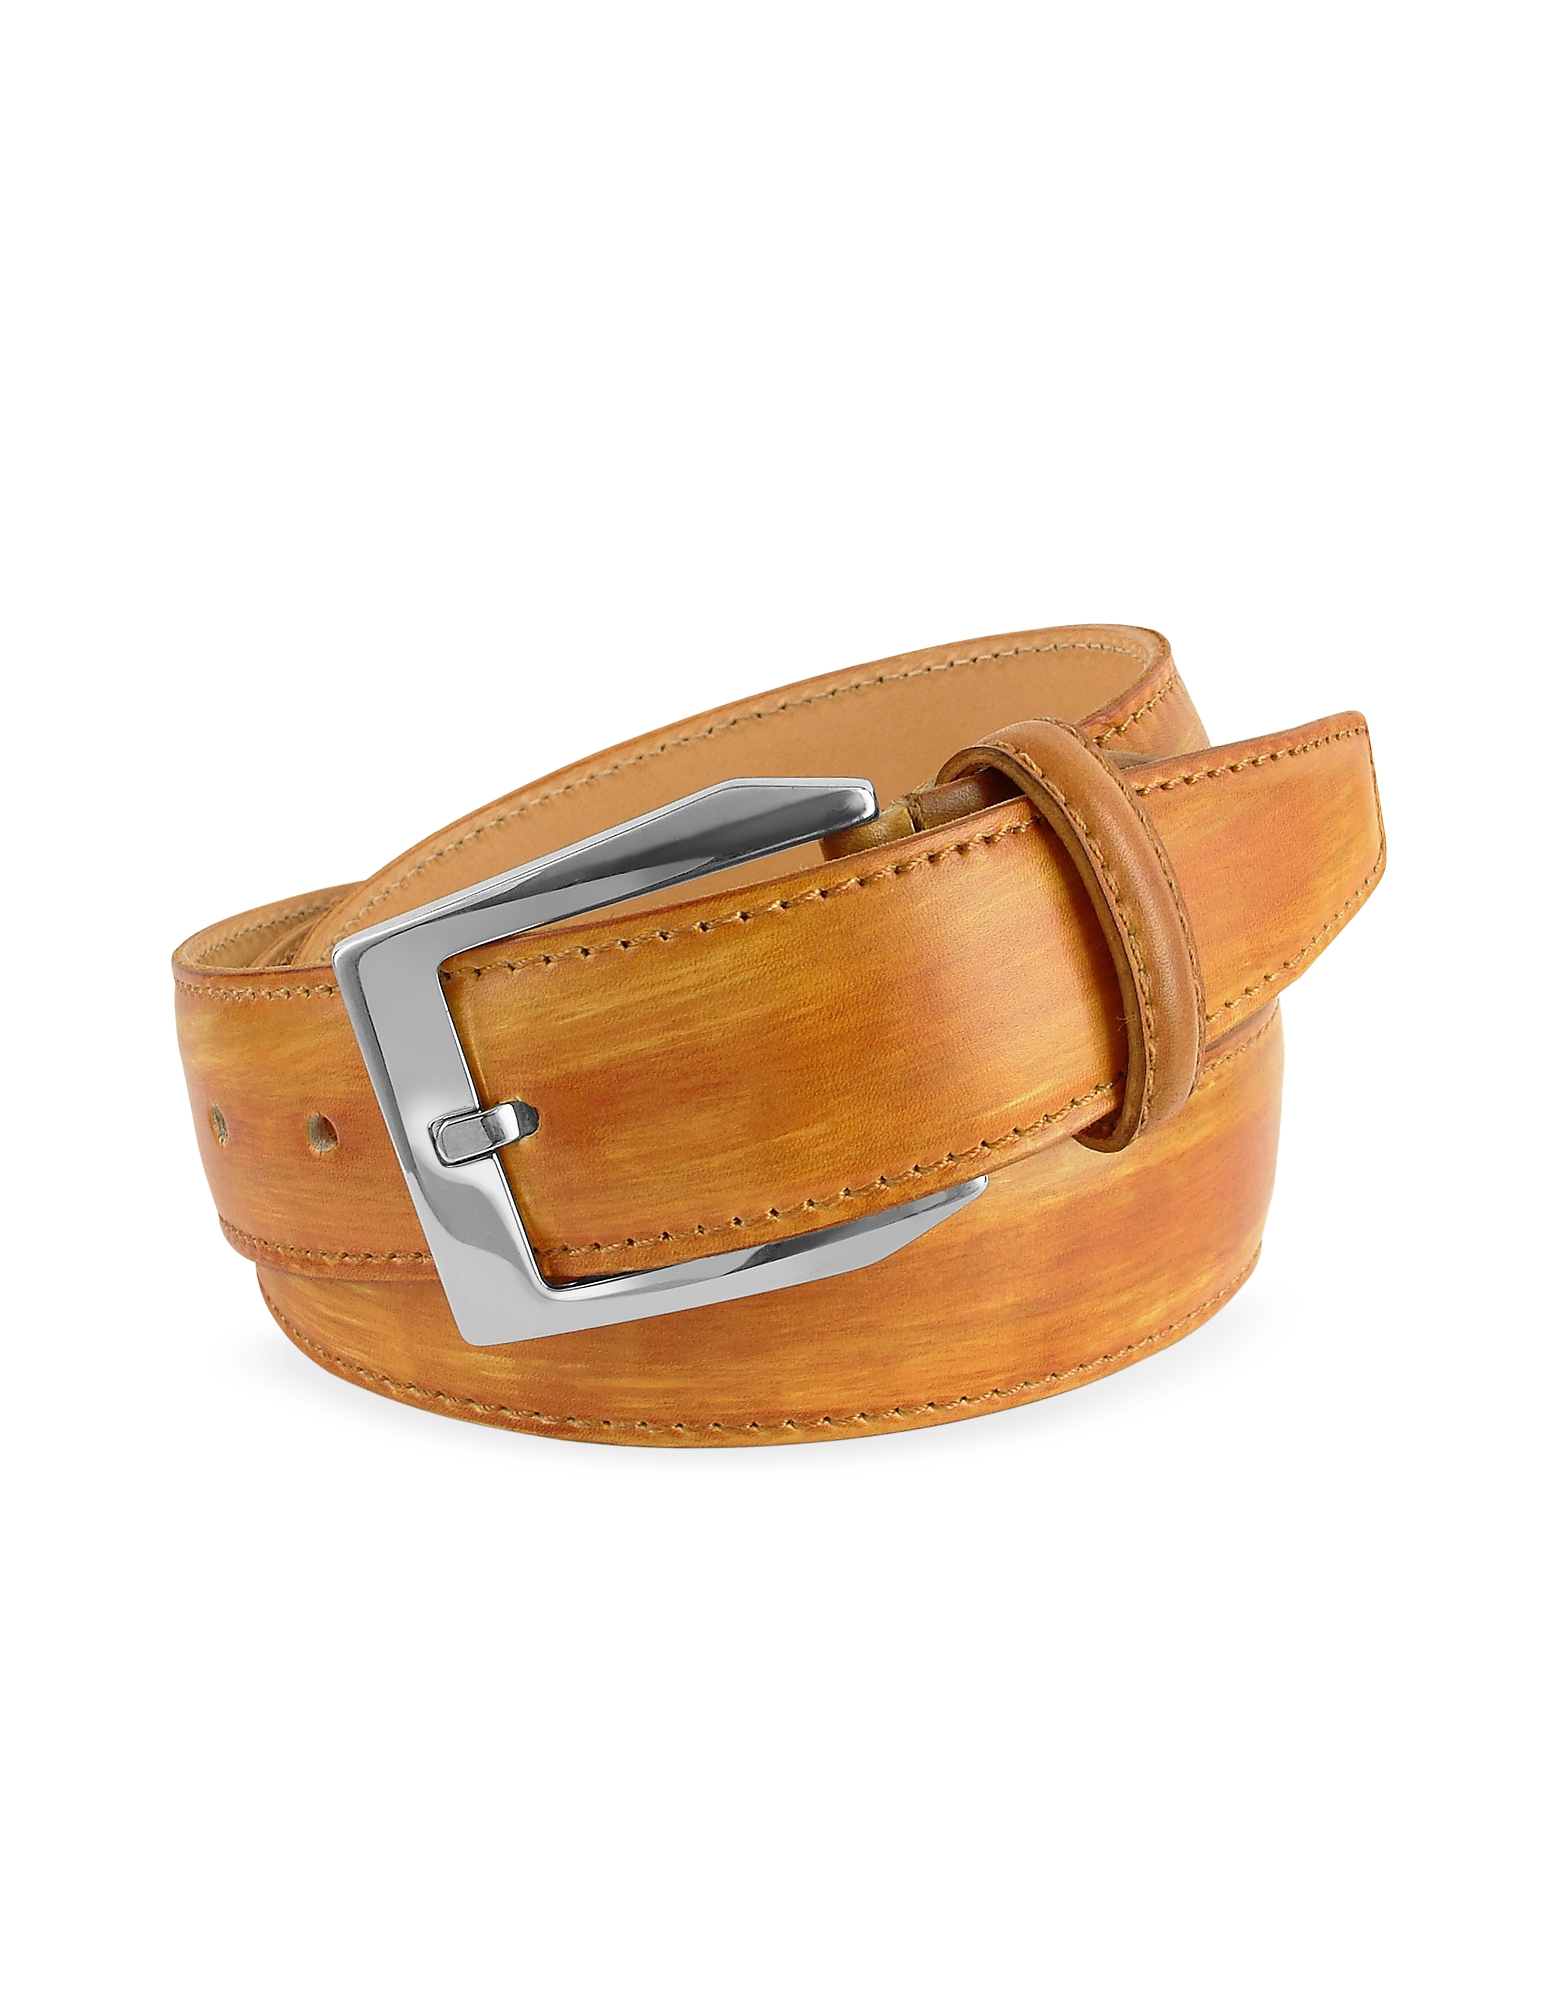 Image of Pakerson Designer Men's Belts, Men's Ocher Hand Painted Italian Leather Belt